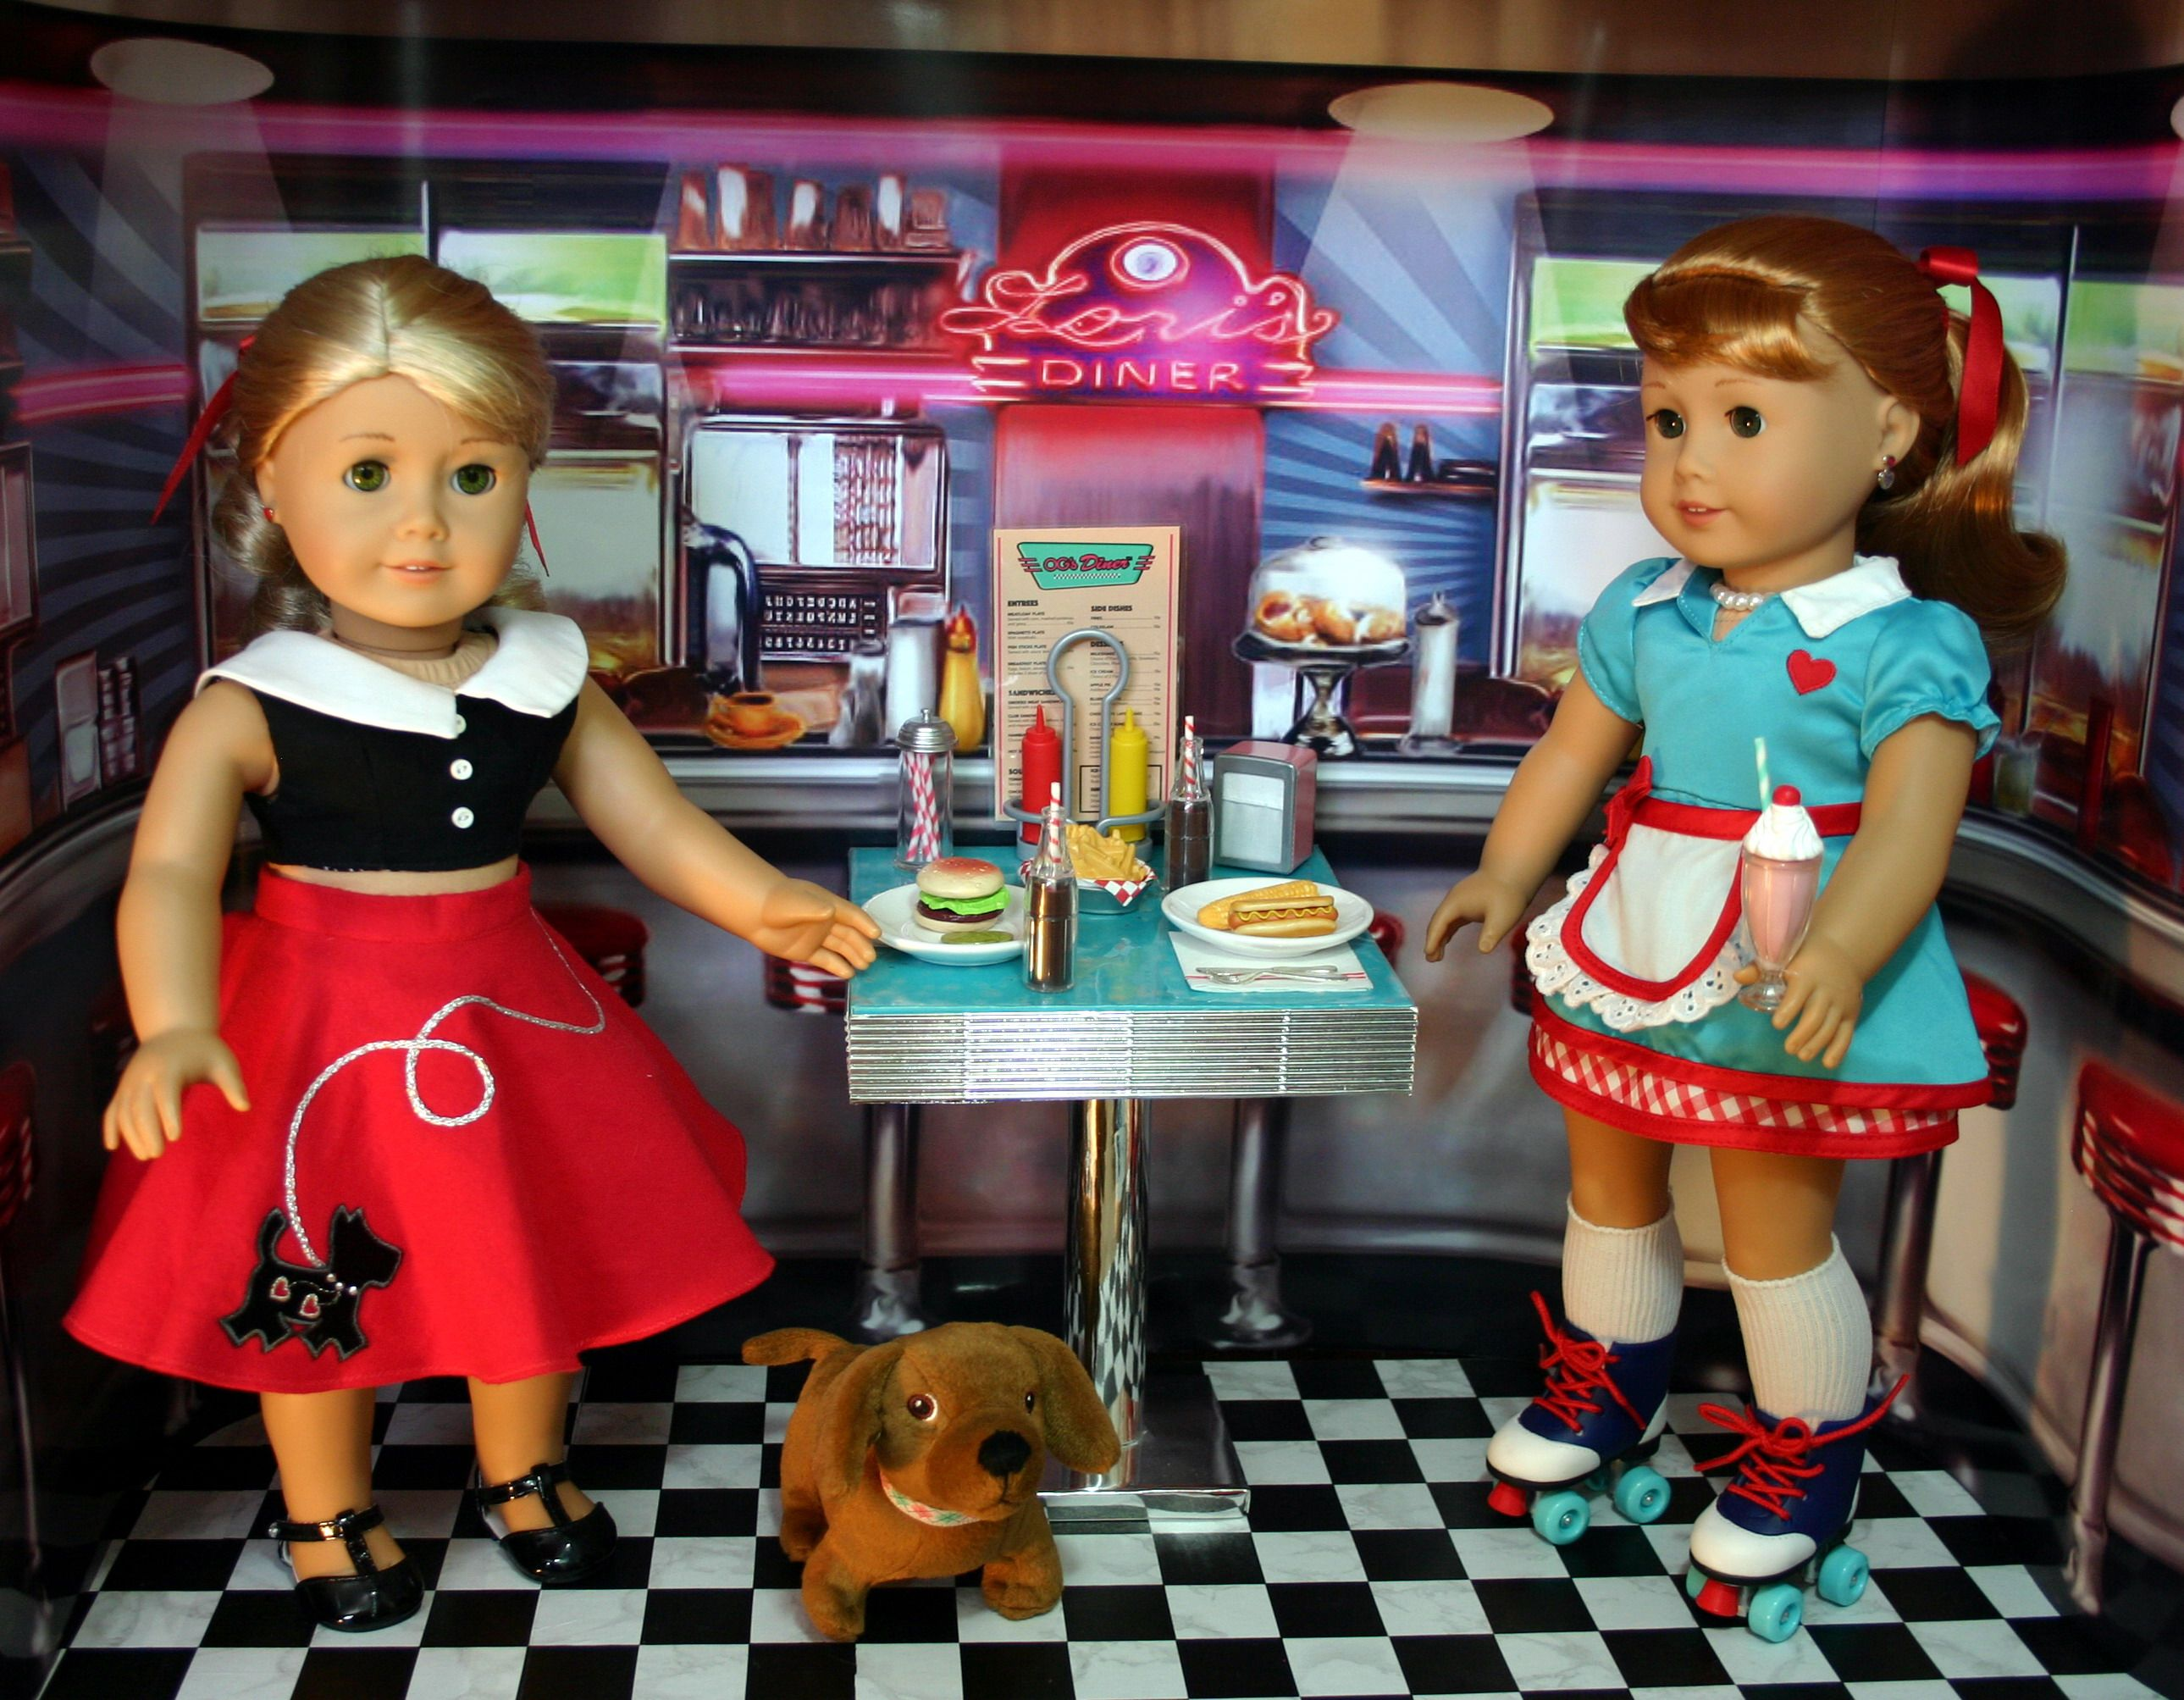 American Girl Dolls Lanie, Maryellen, and her dog scooter